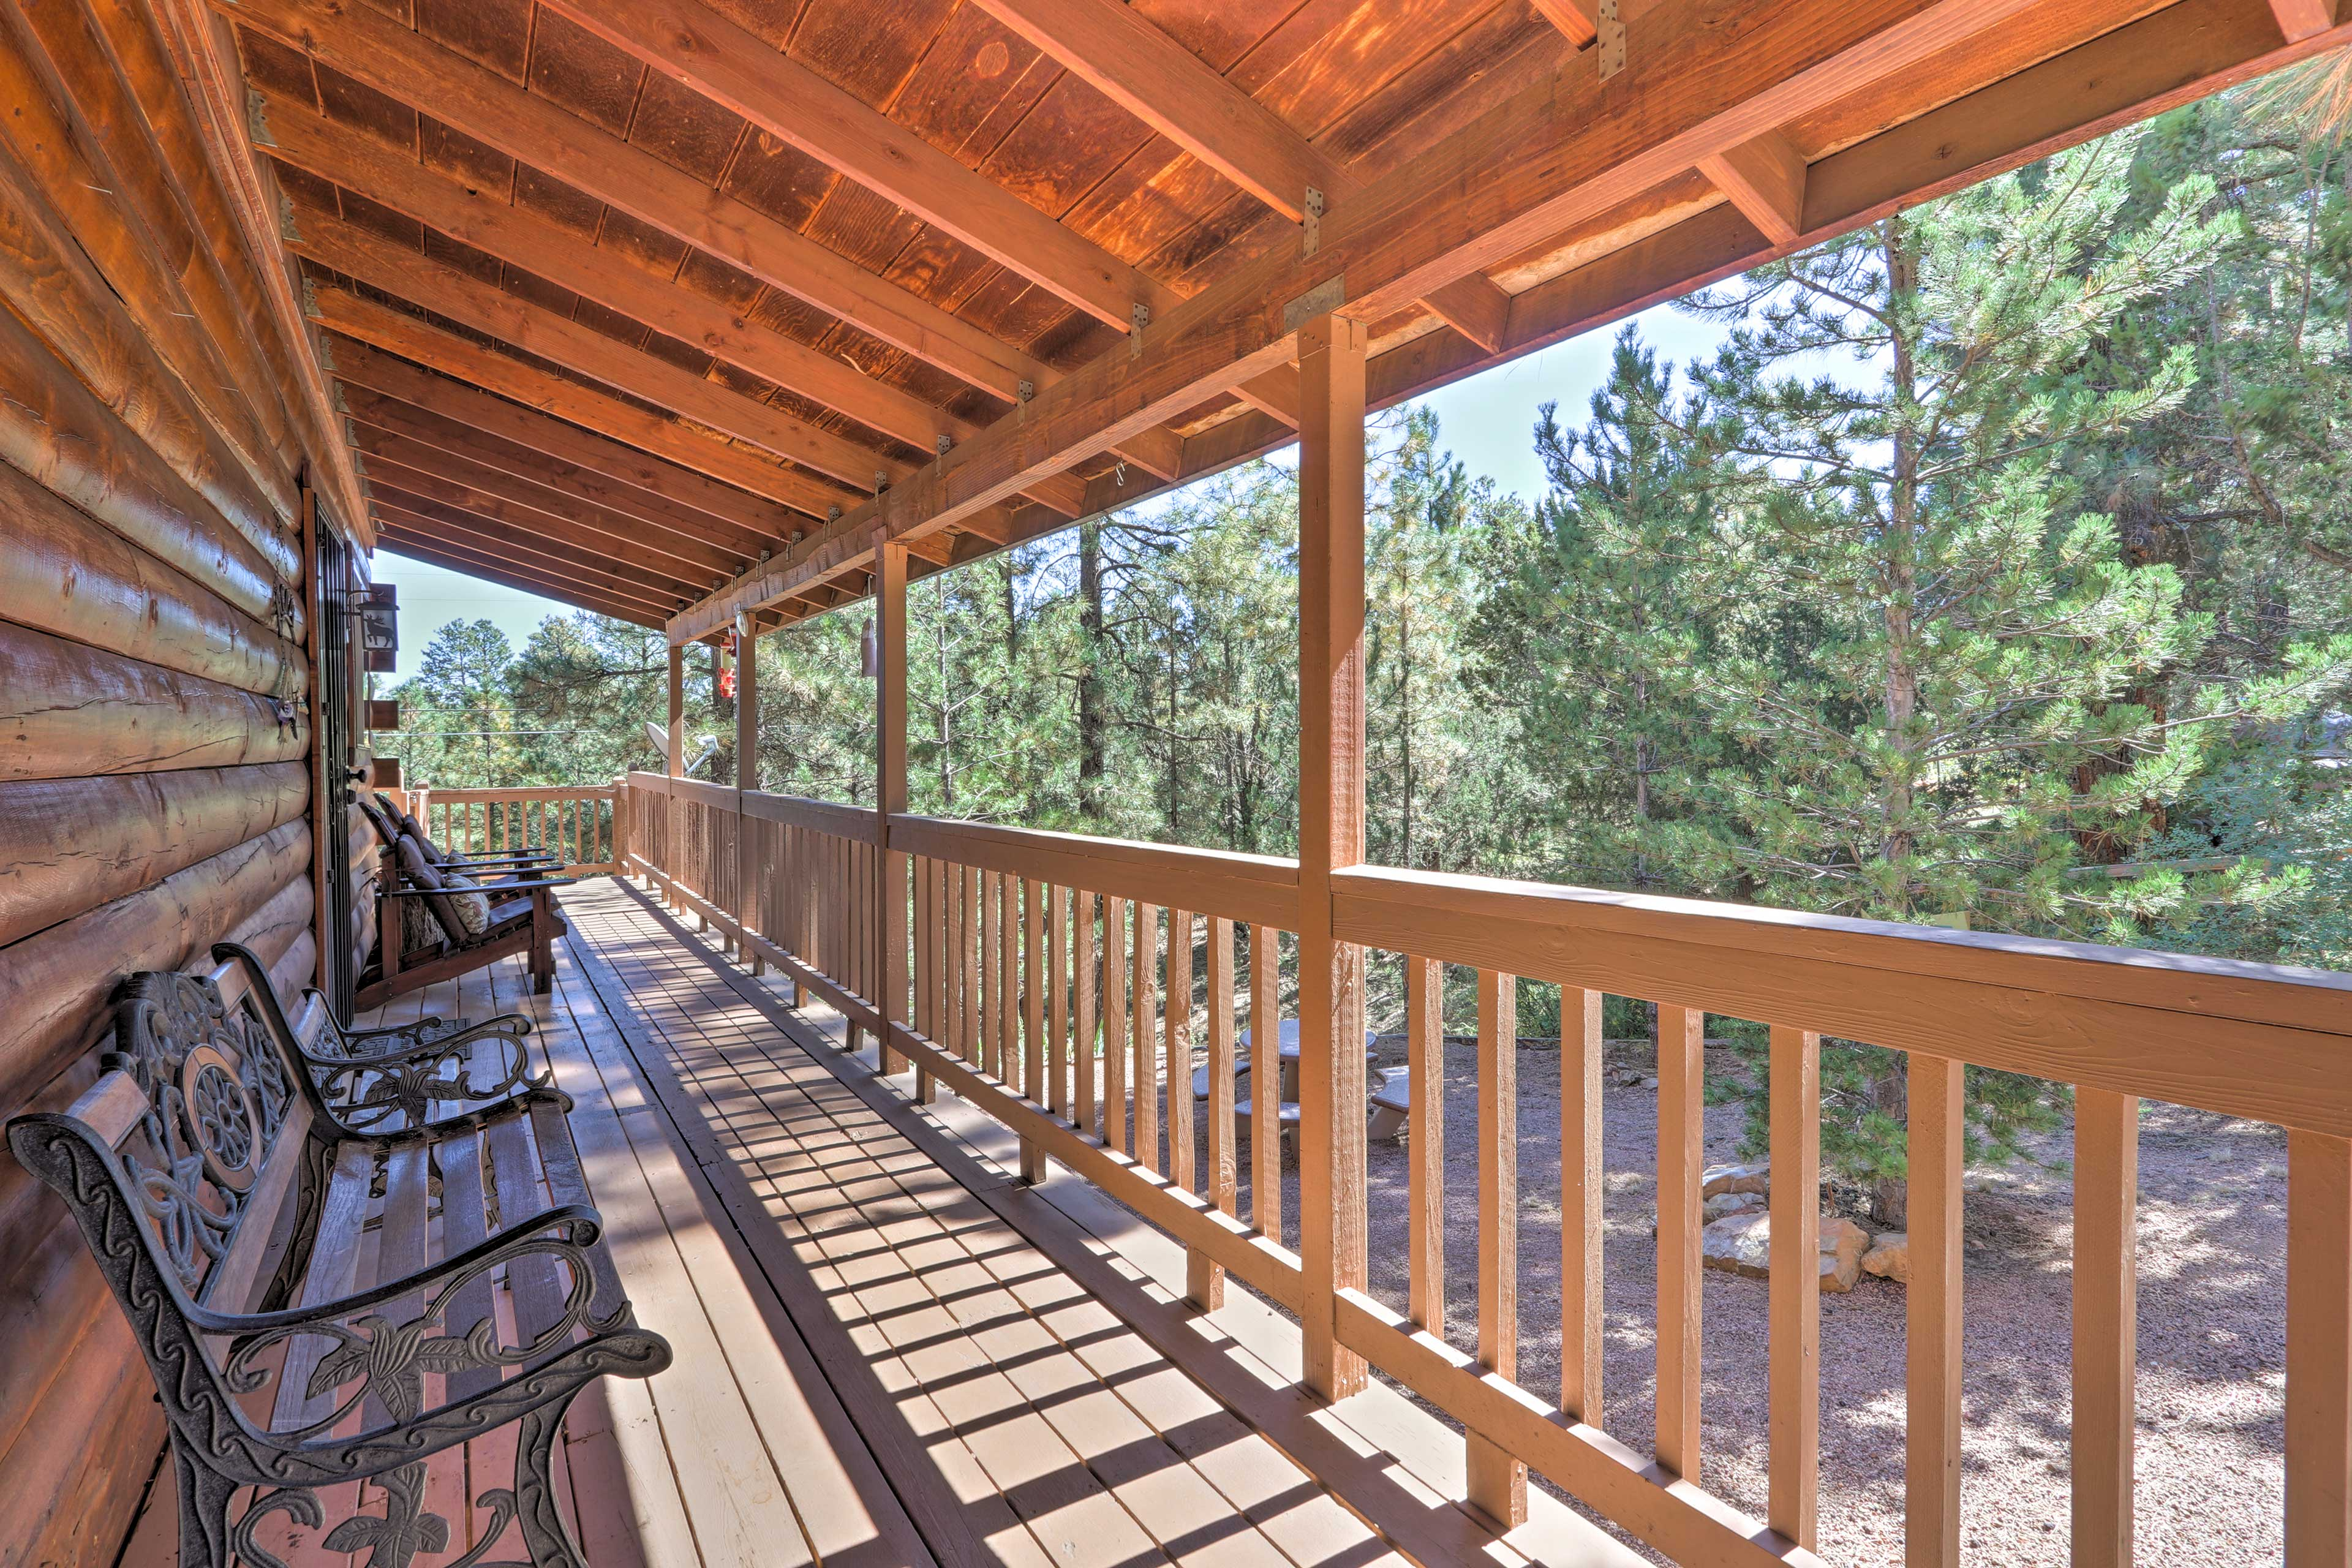 Spend evenings on the deck overlooking the pines.